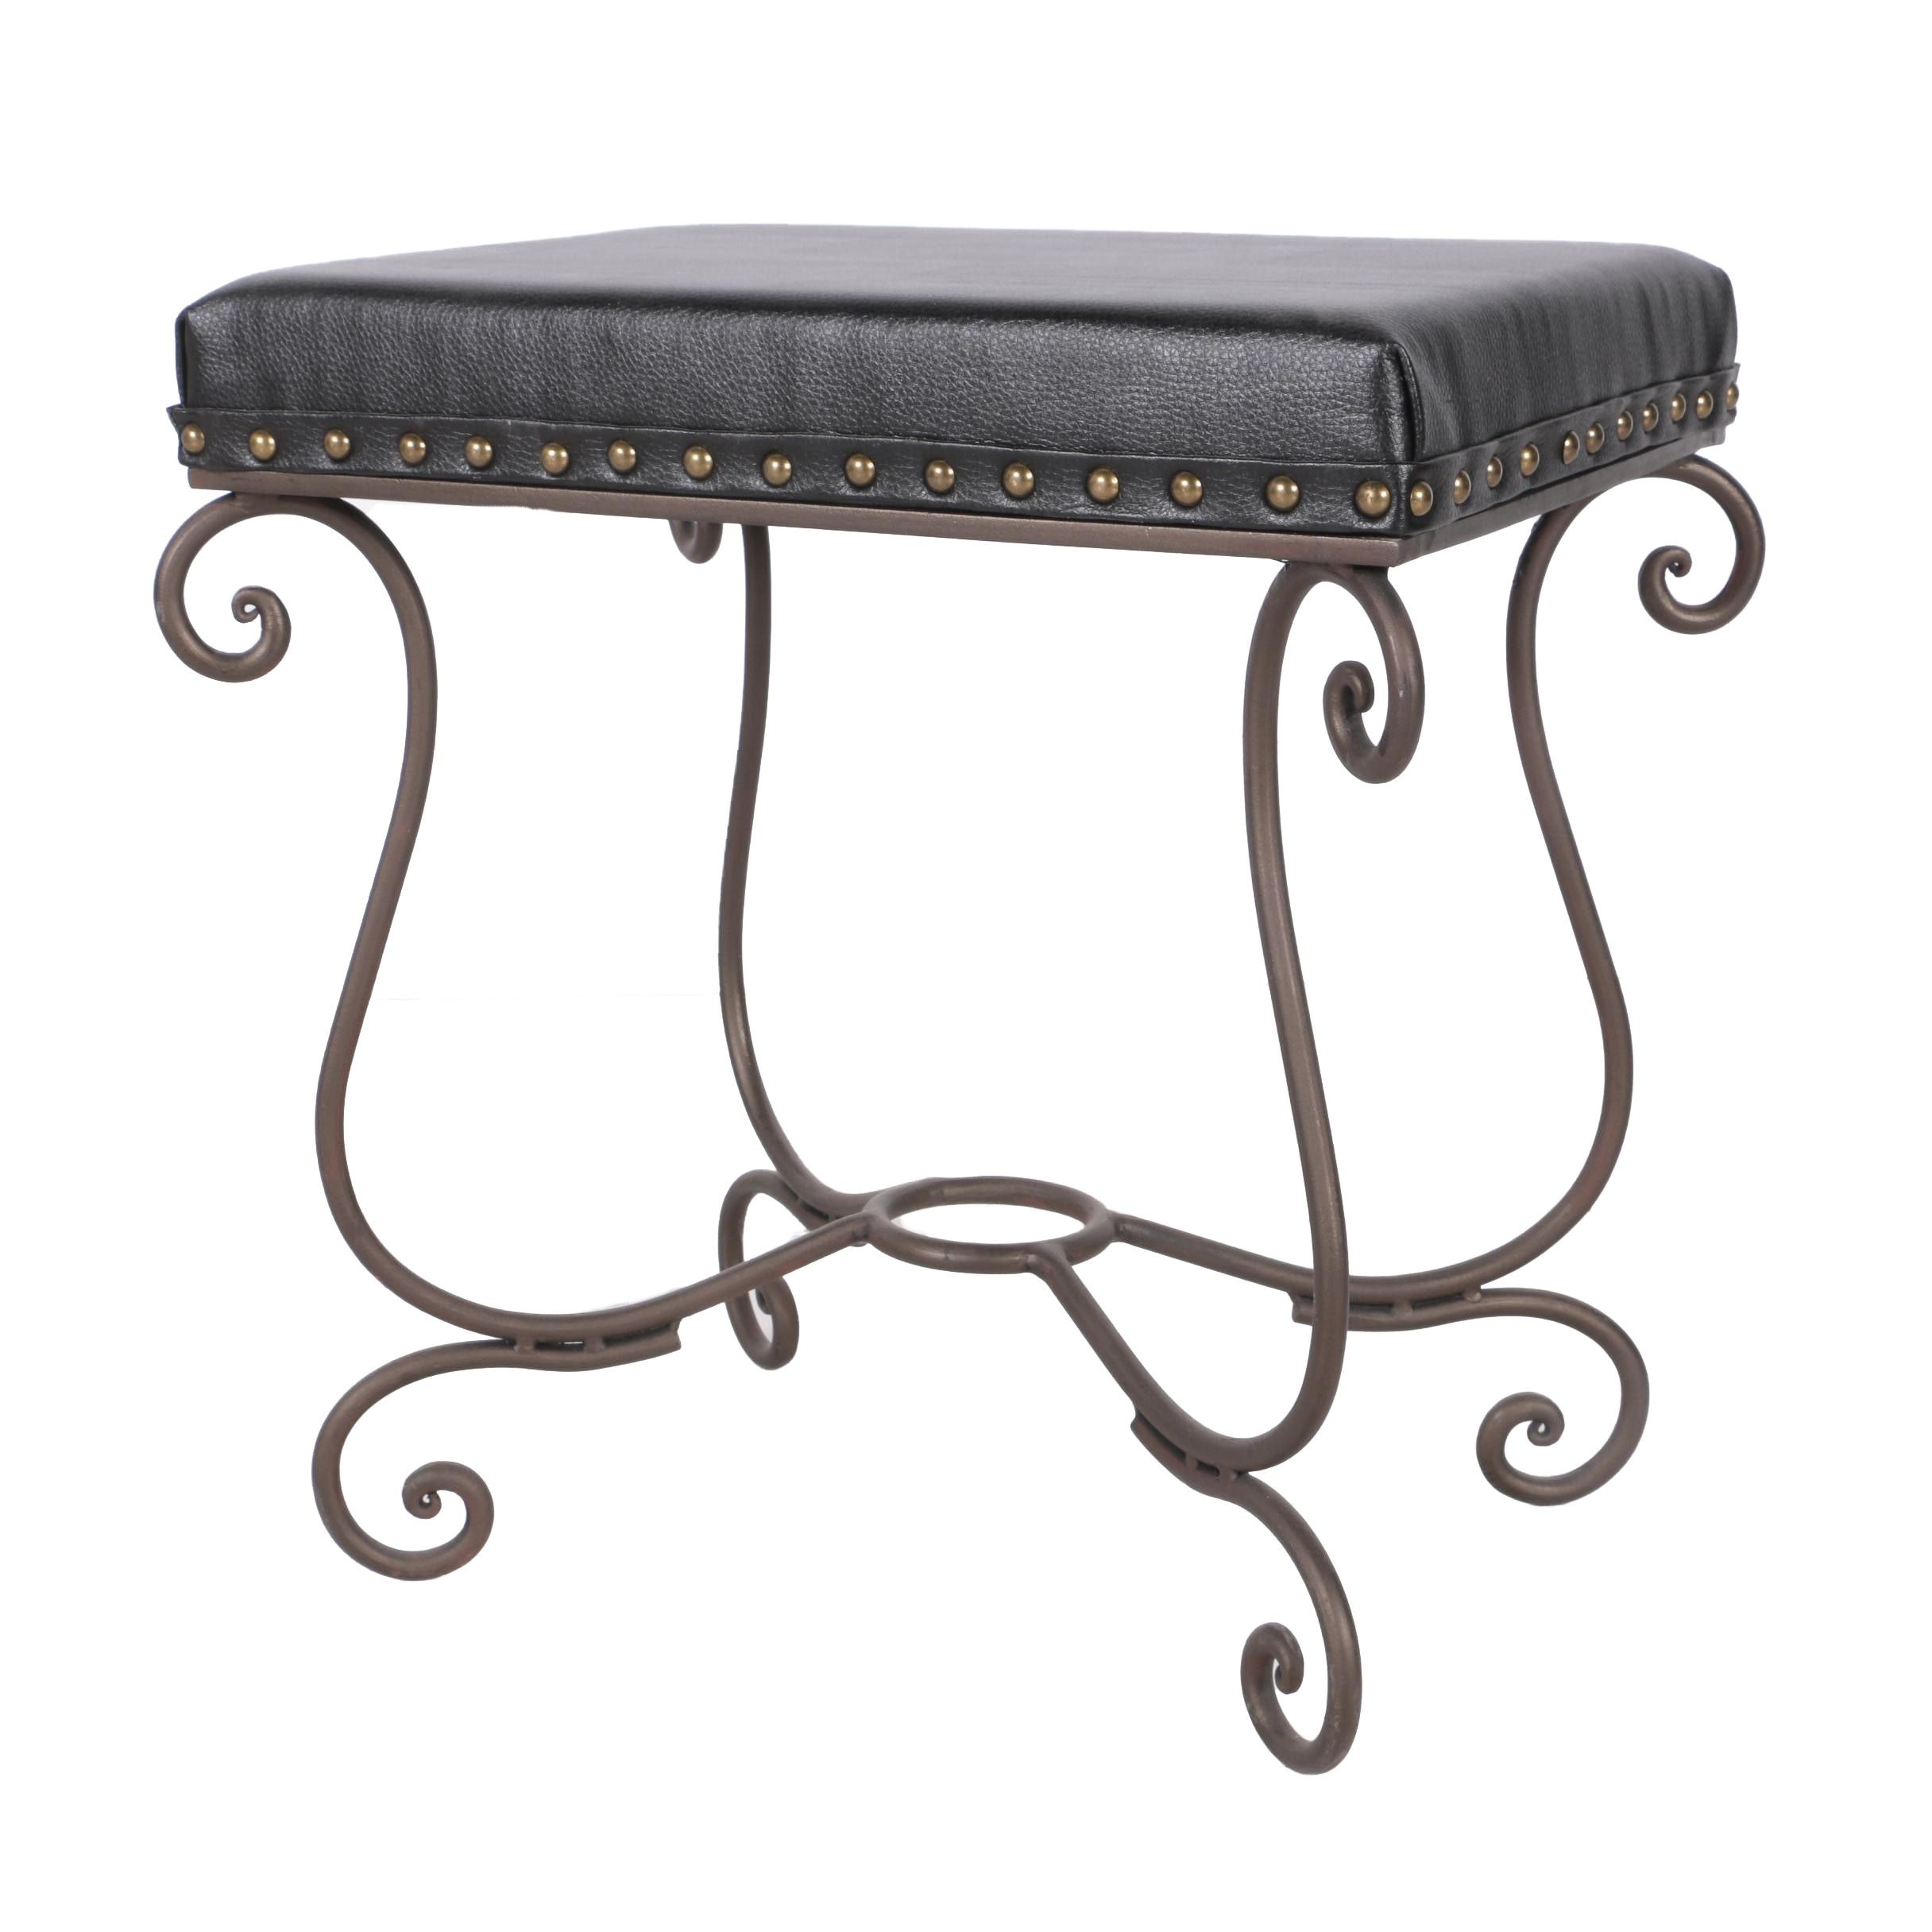 Neoclassical Style Leather Cushion Bench